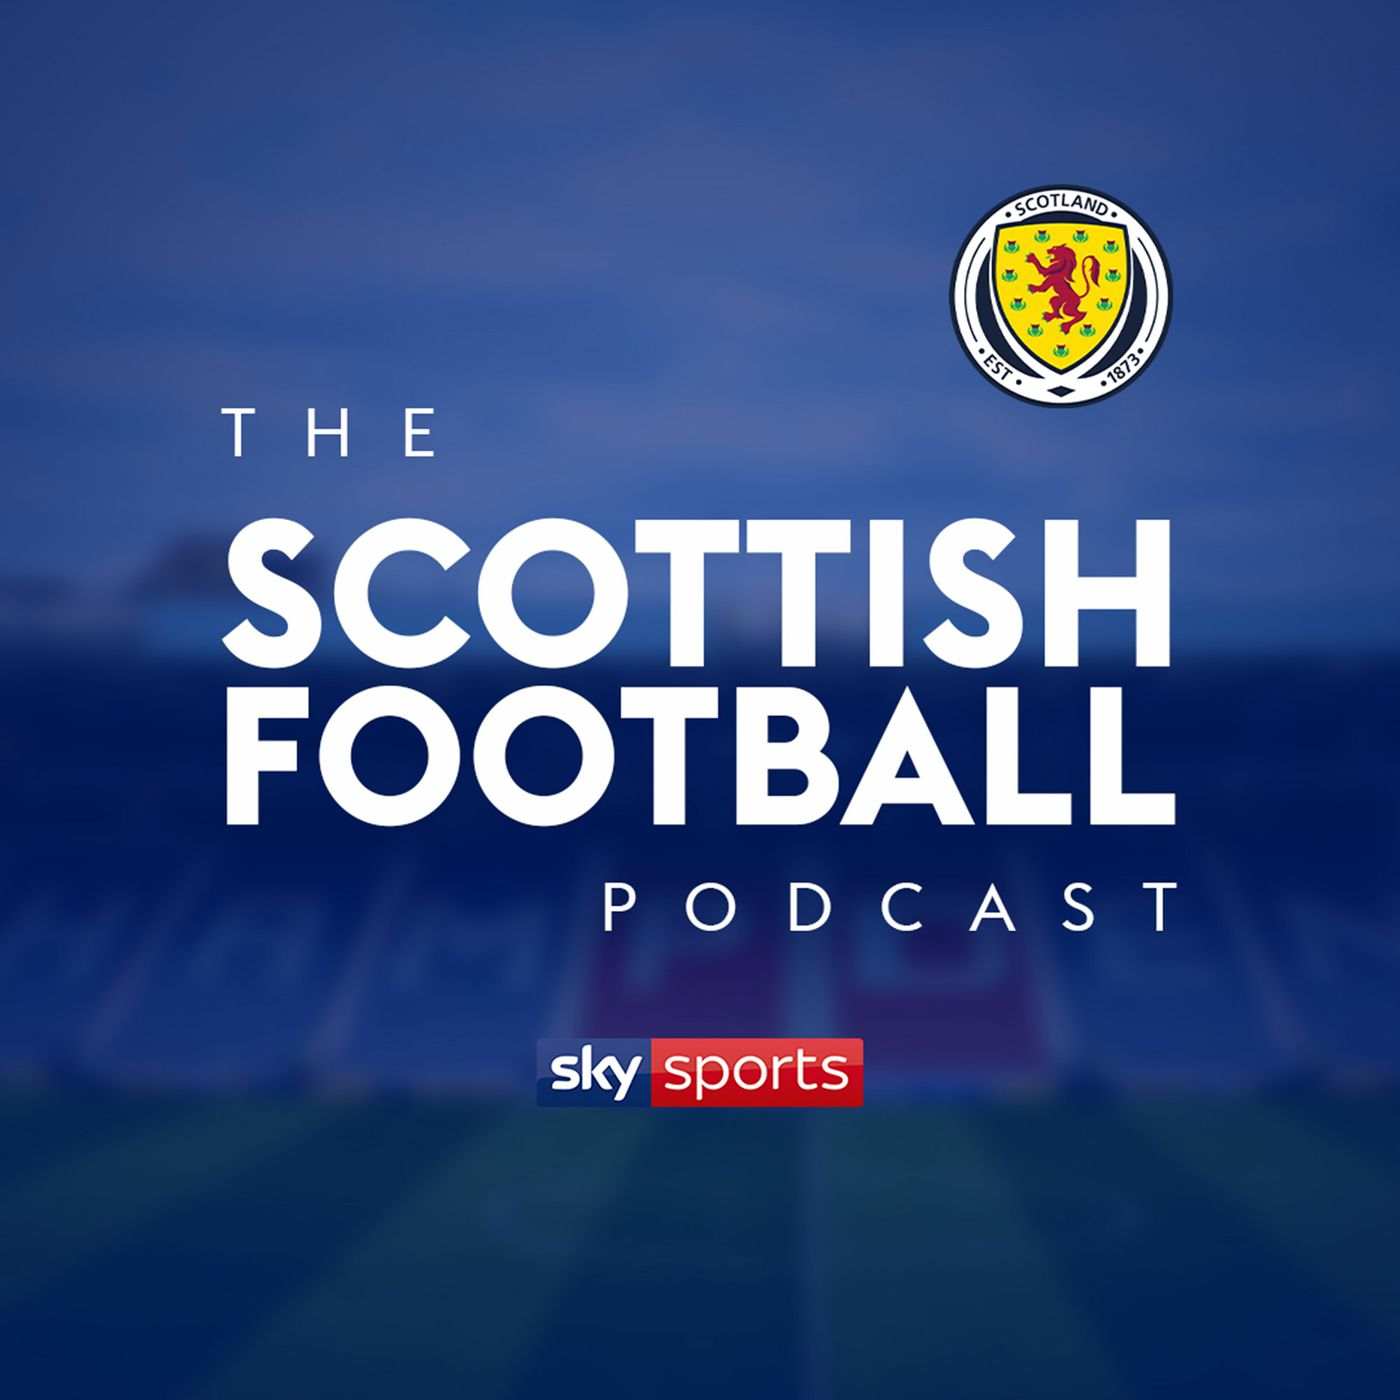 Our new Scottish football podcast is coming soon...